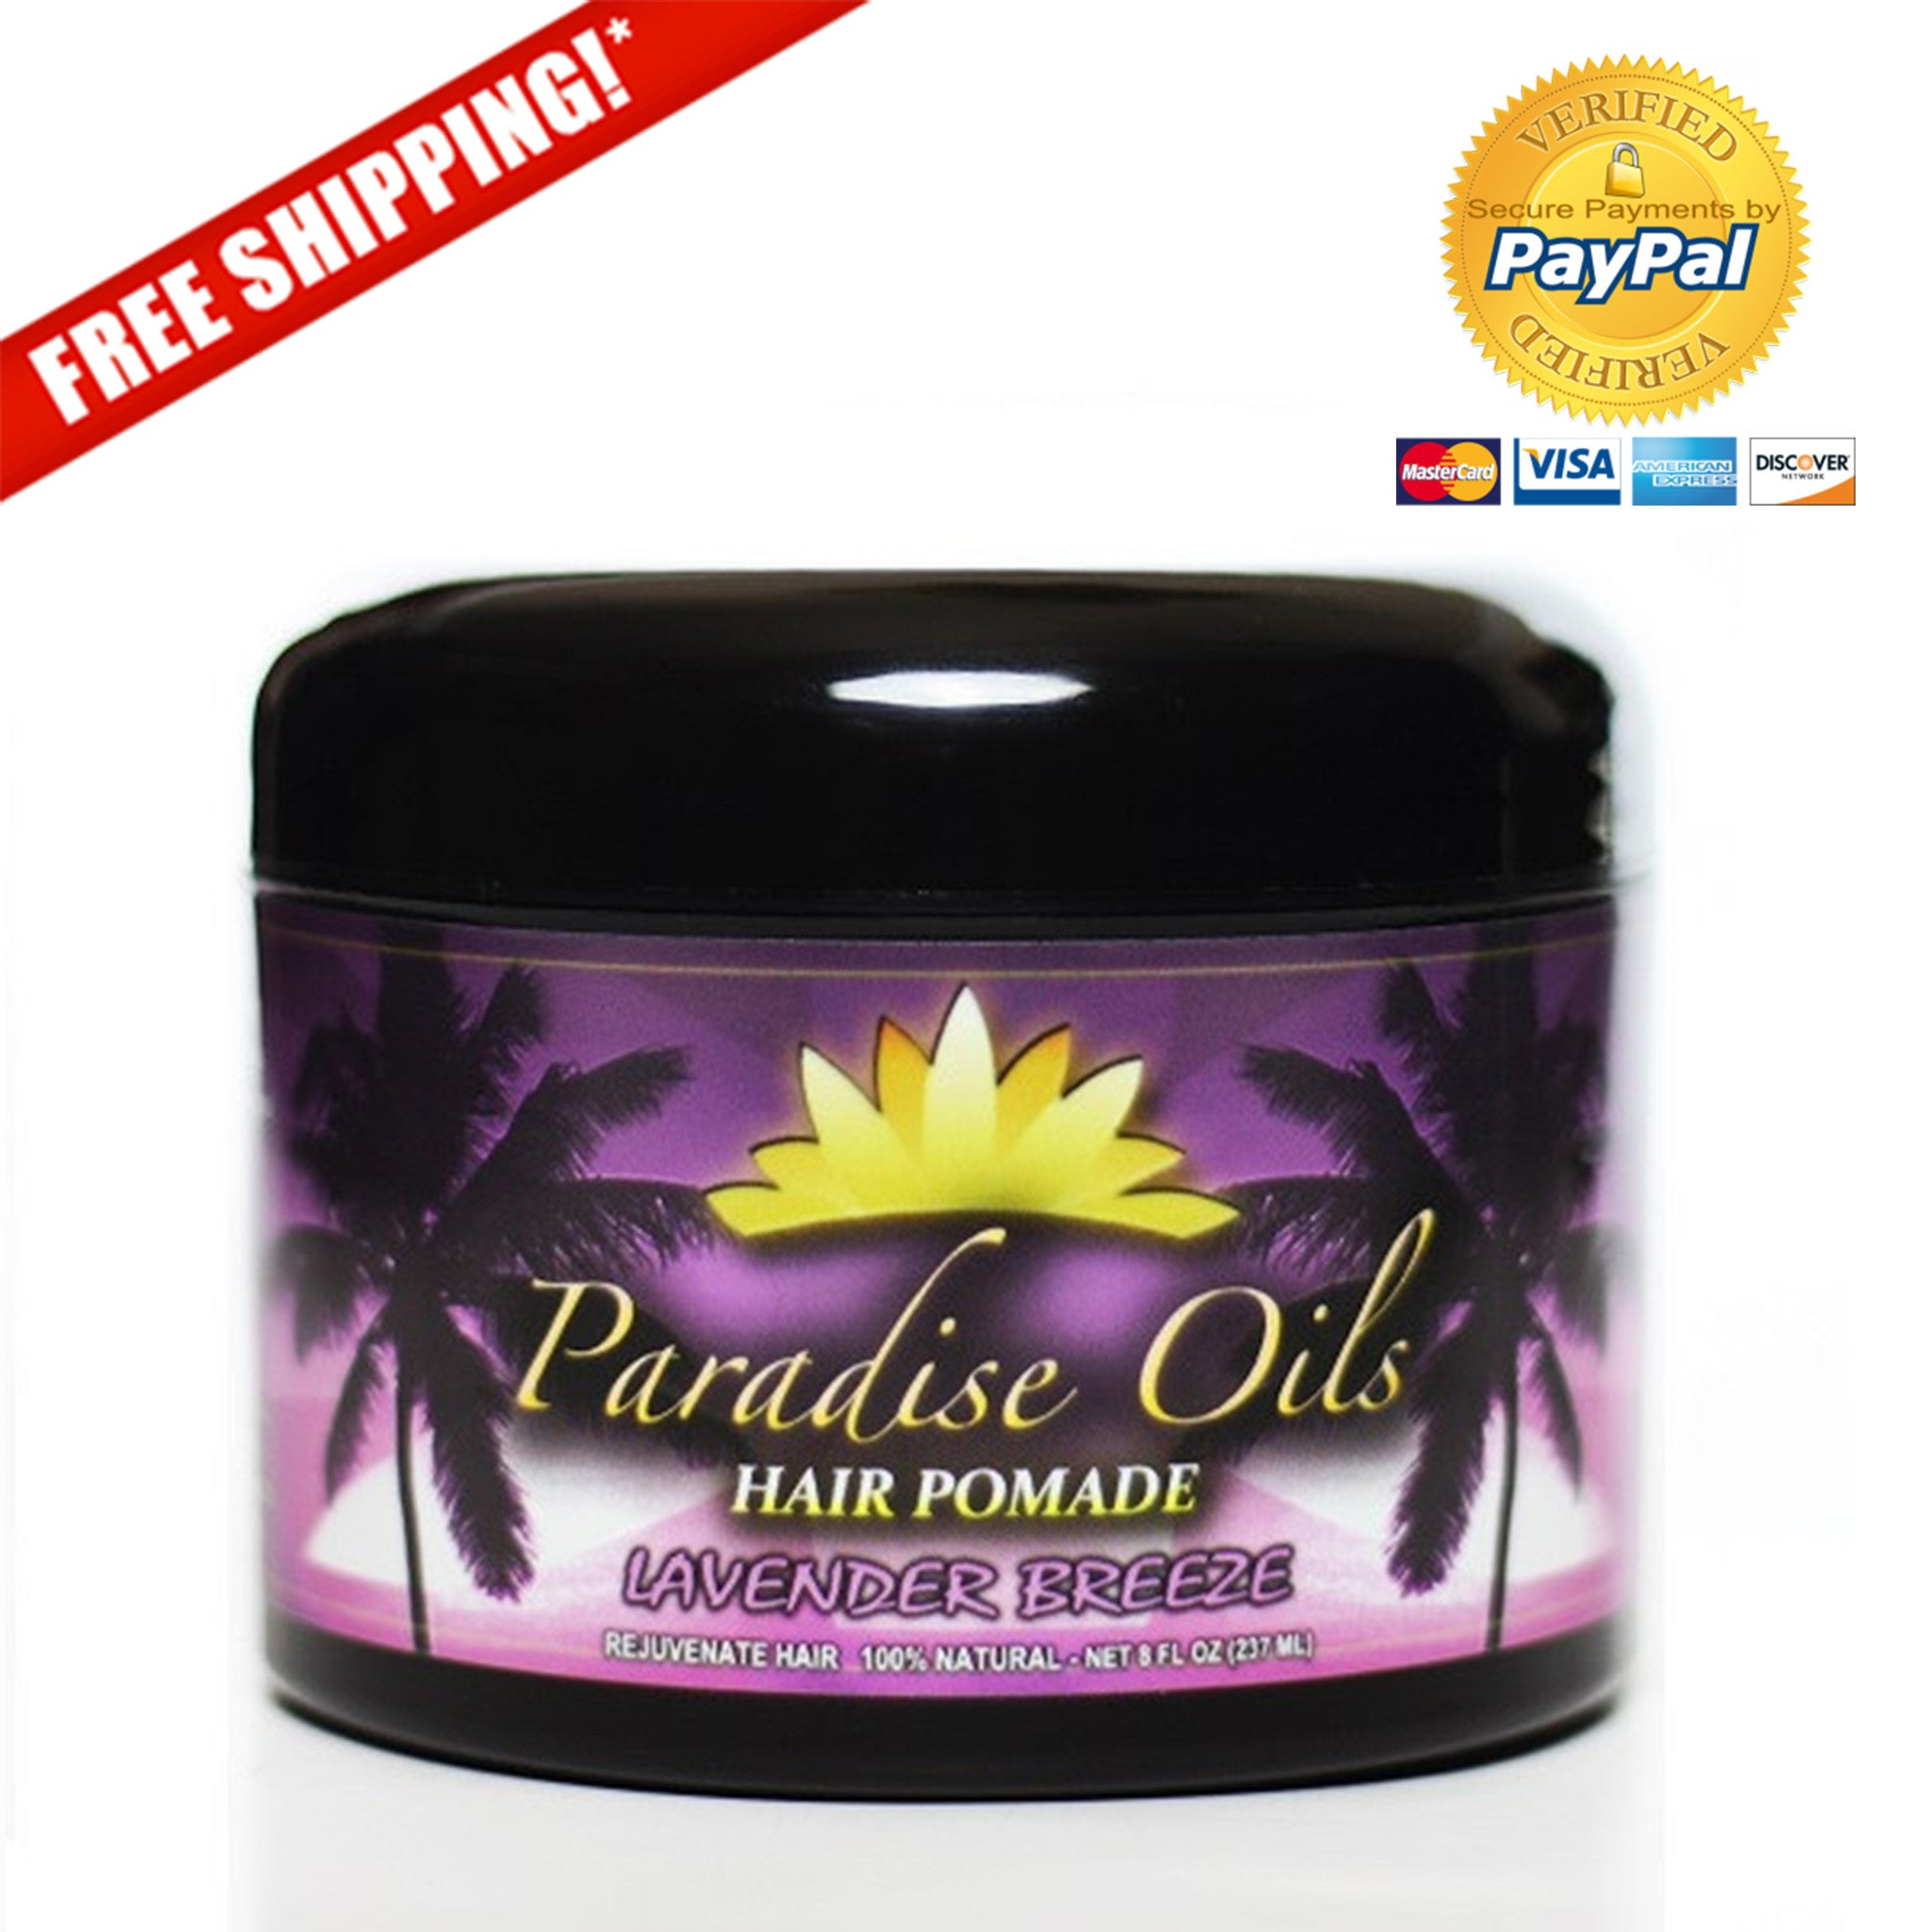 Paradise Oils Organic Hair Pomade - Lavender Breeze